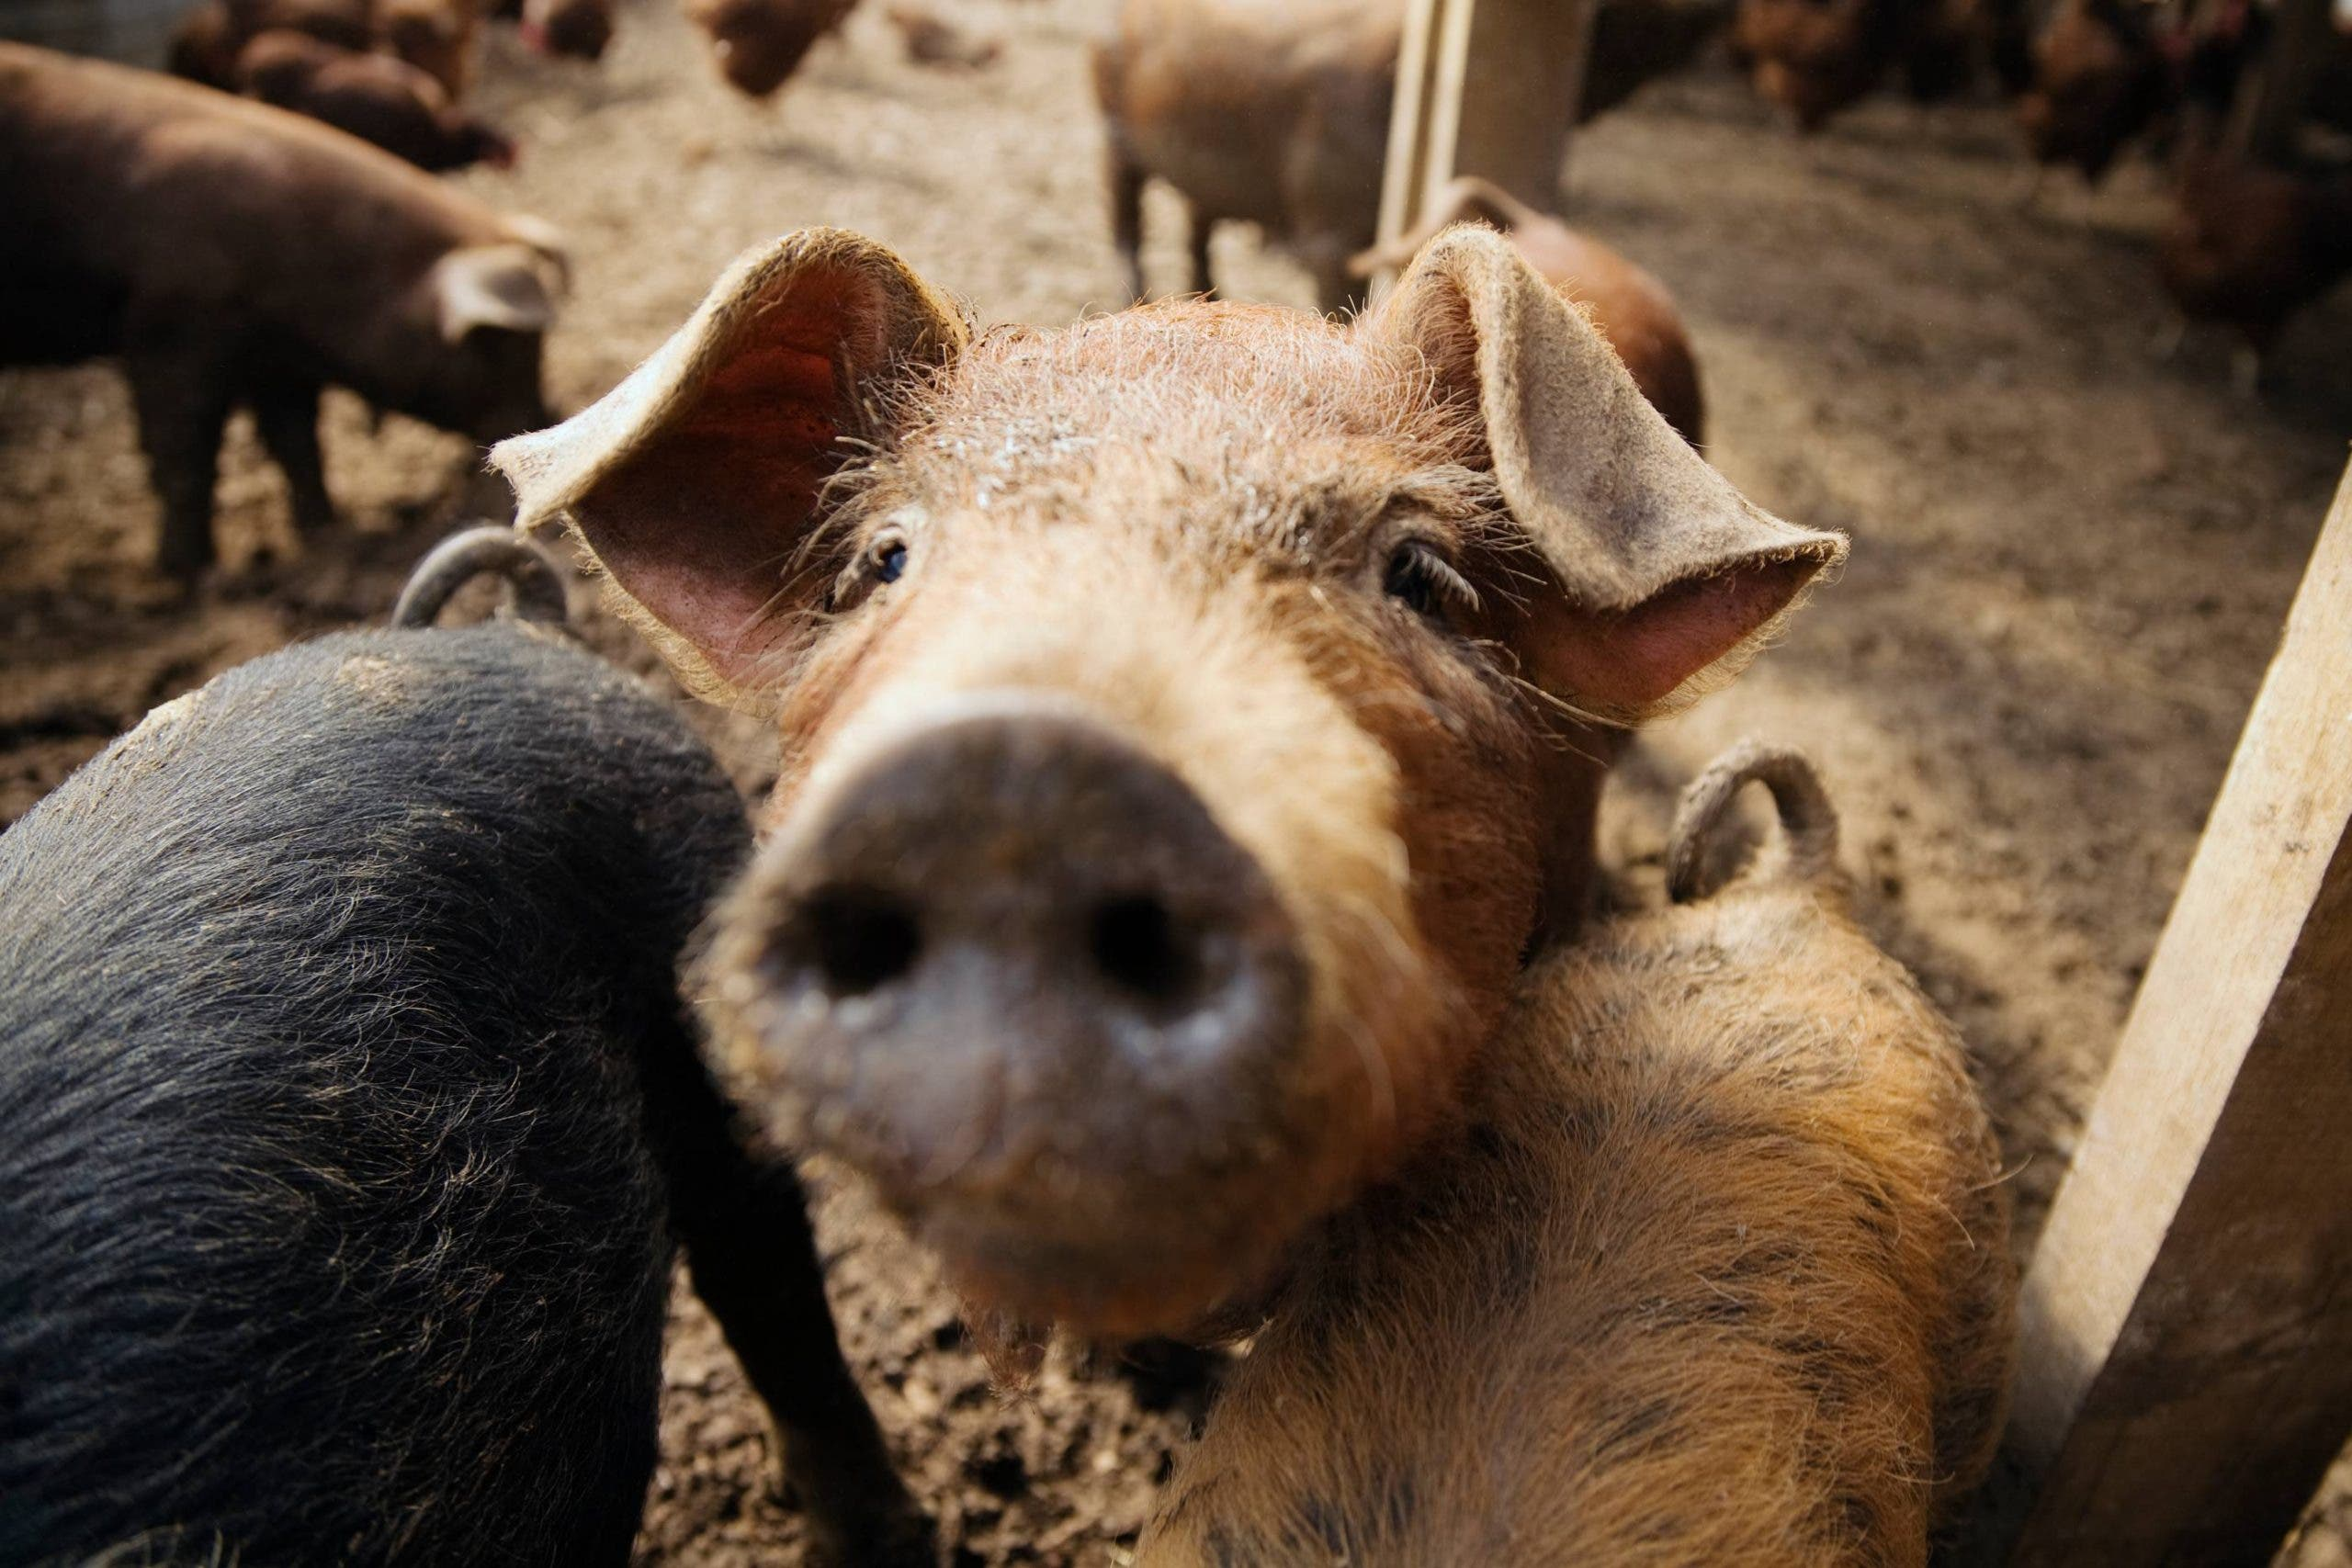 Costa Blanca News – Pig farm slurry discharges may be causing Mar Menor lagoon pollution in Spain